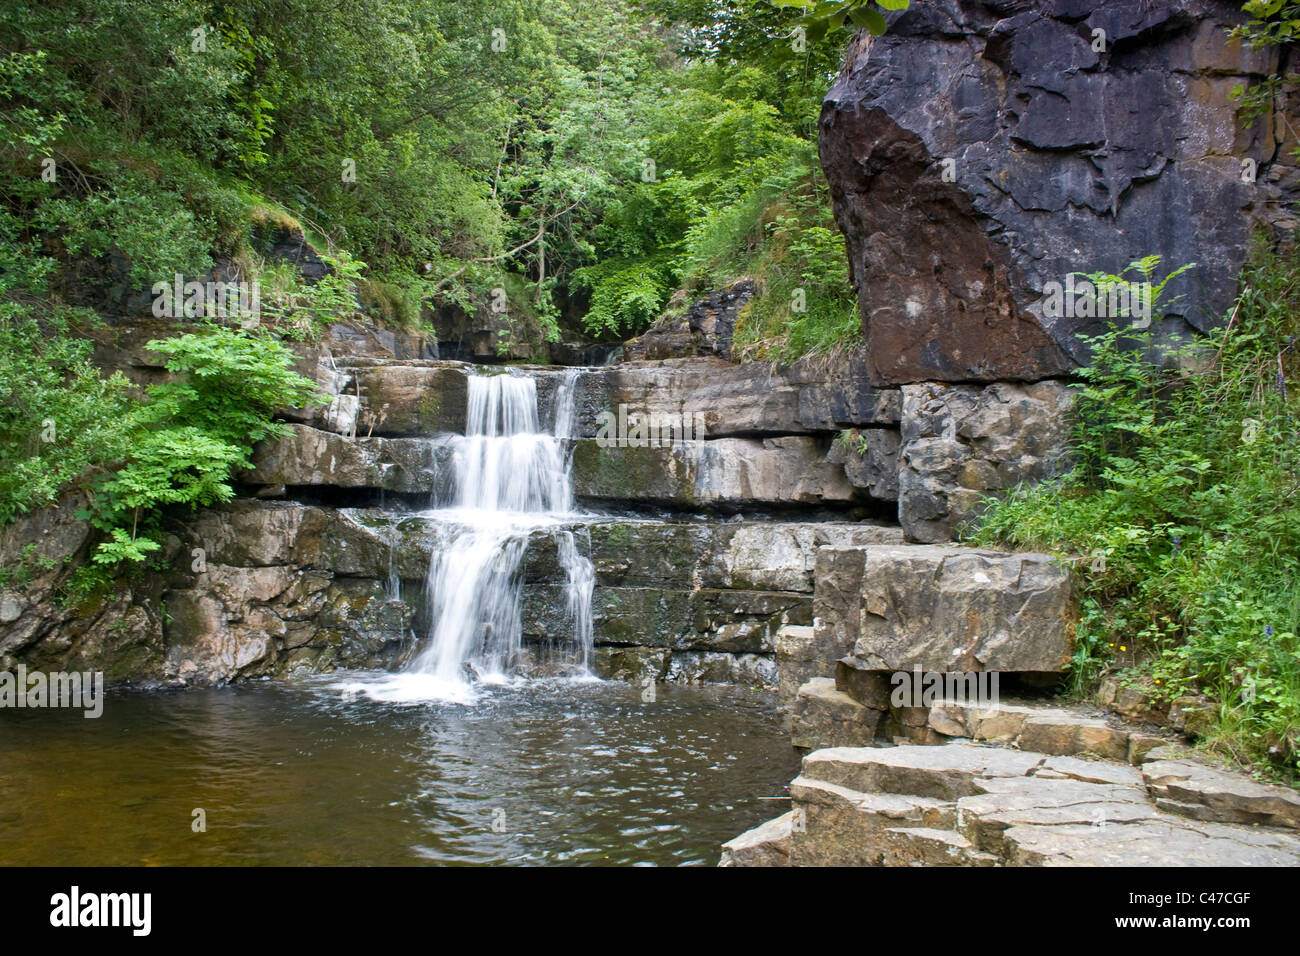 Waterfall near Gibsons Cave, Bowlees, Teesdale, County Durham - Stock Image